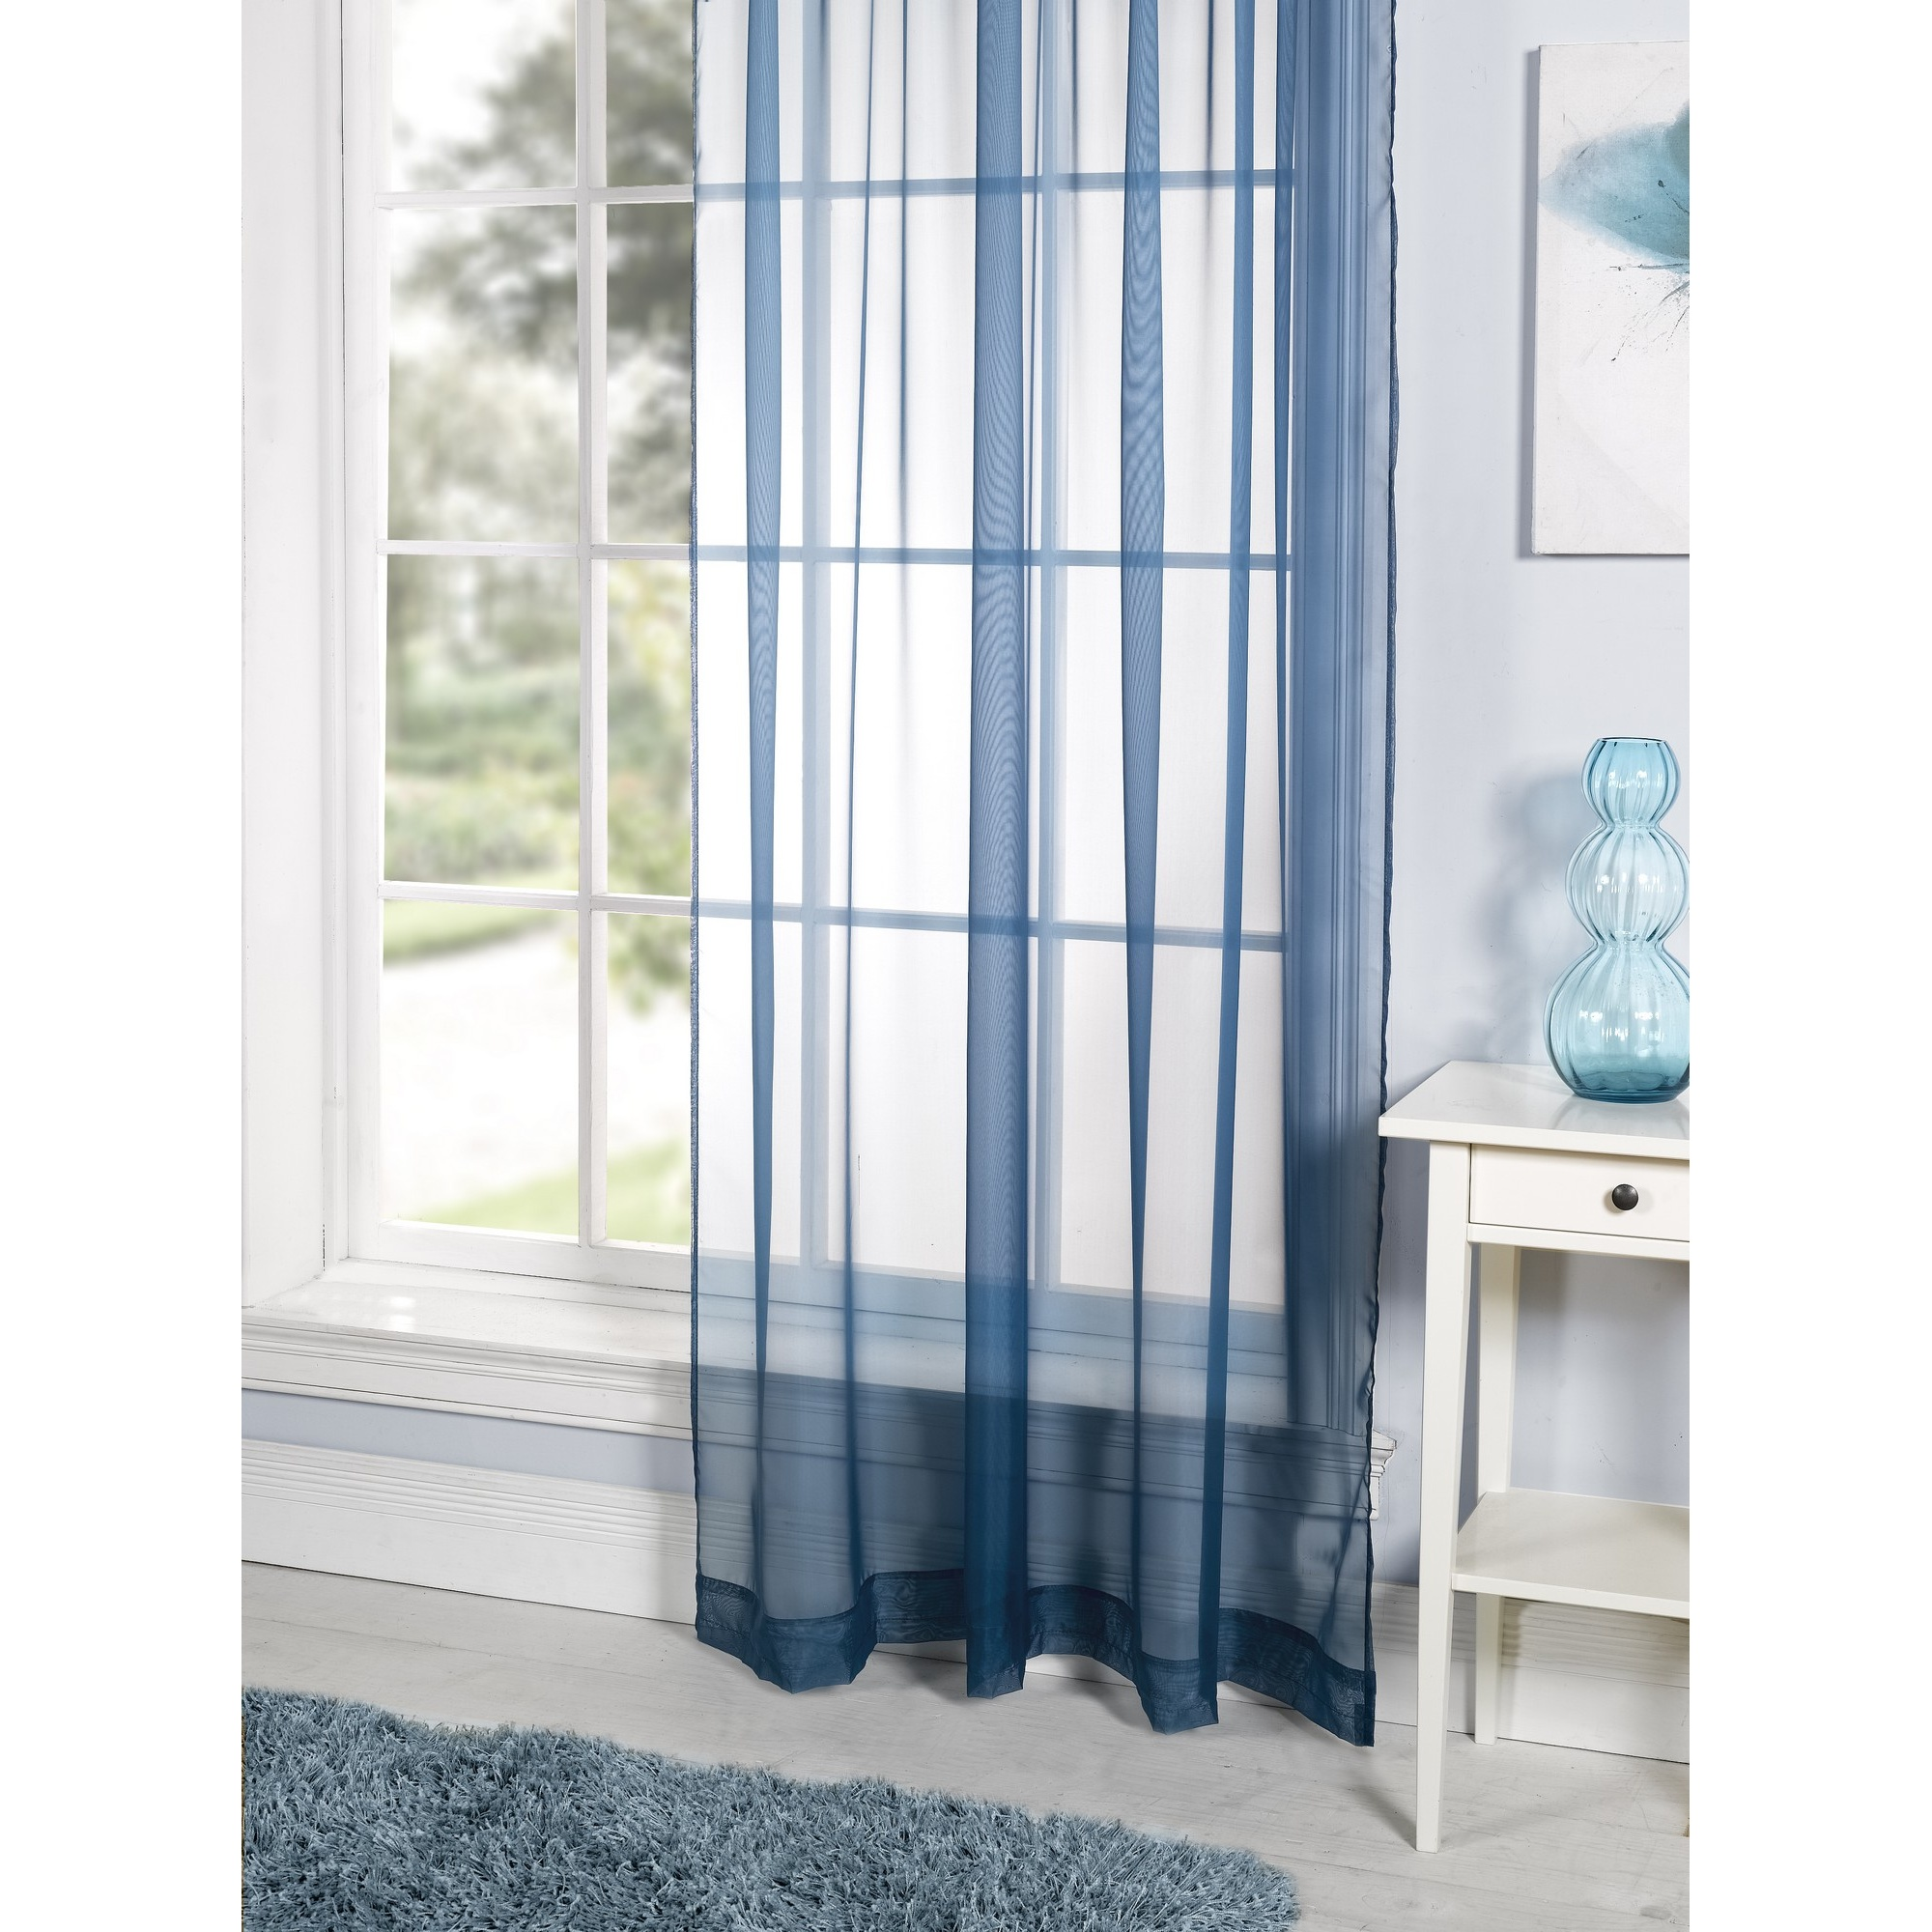 Lucy Plain Coloured Ready Made Voile Living Room Panel Curtains Ebay